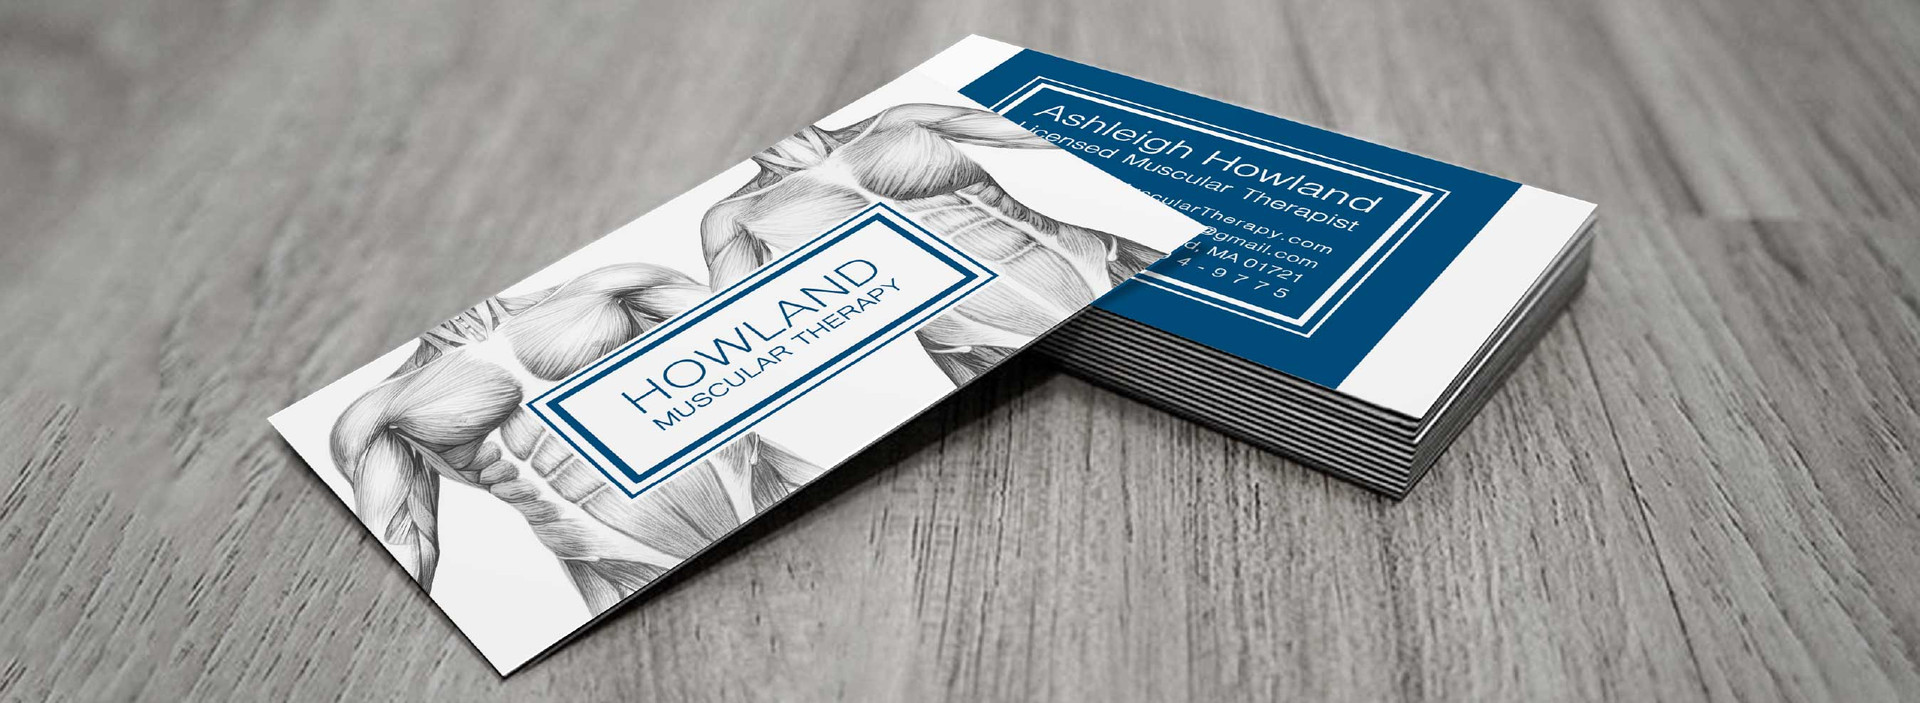 BRANDING, BUSINESS CARDS, PRINT DESIGN